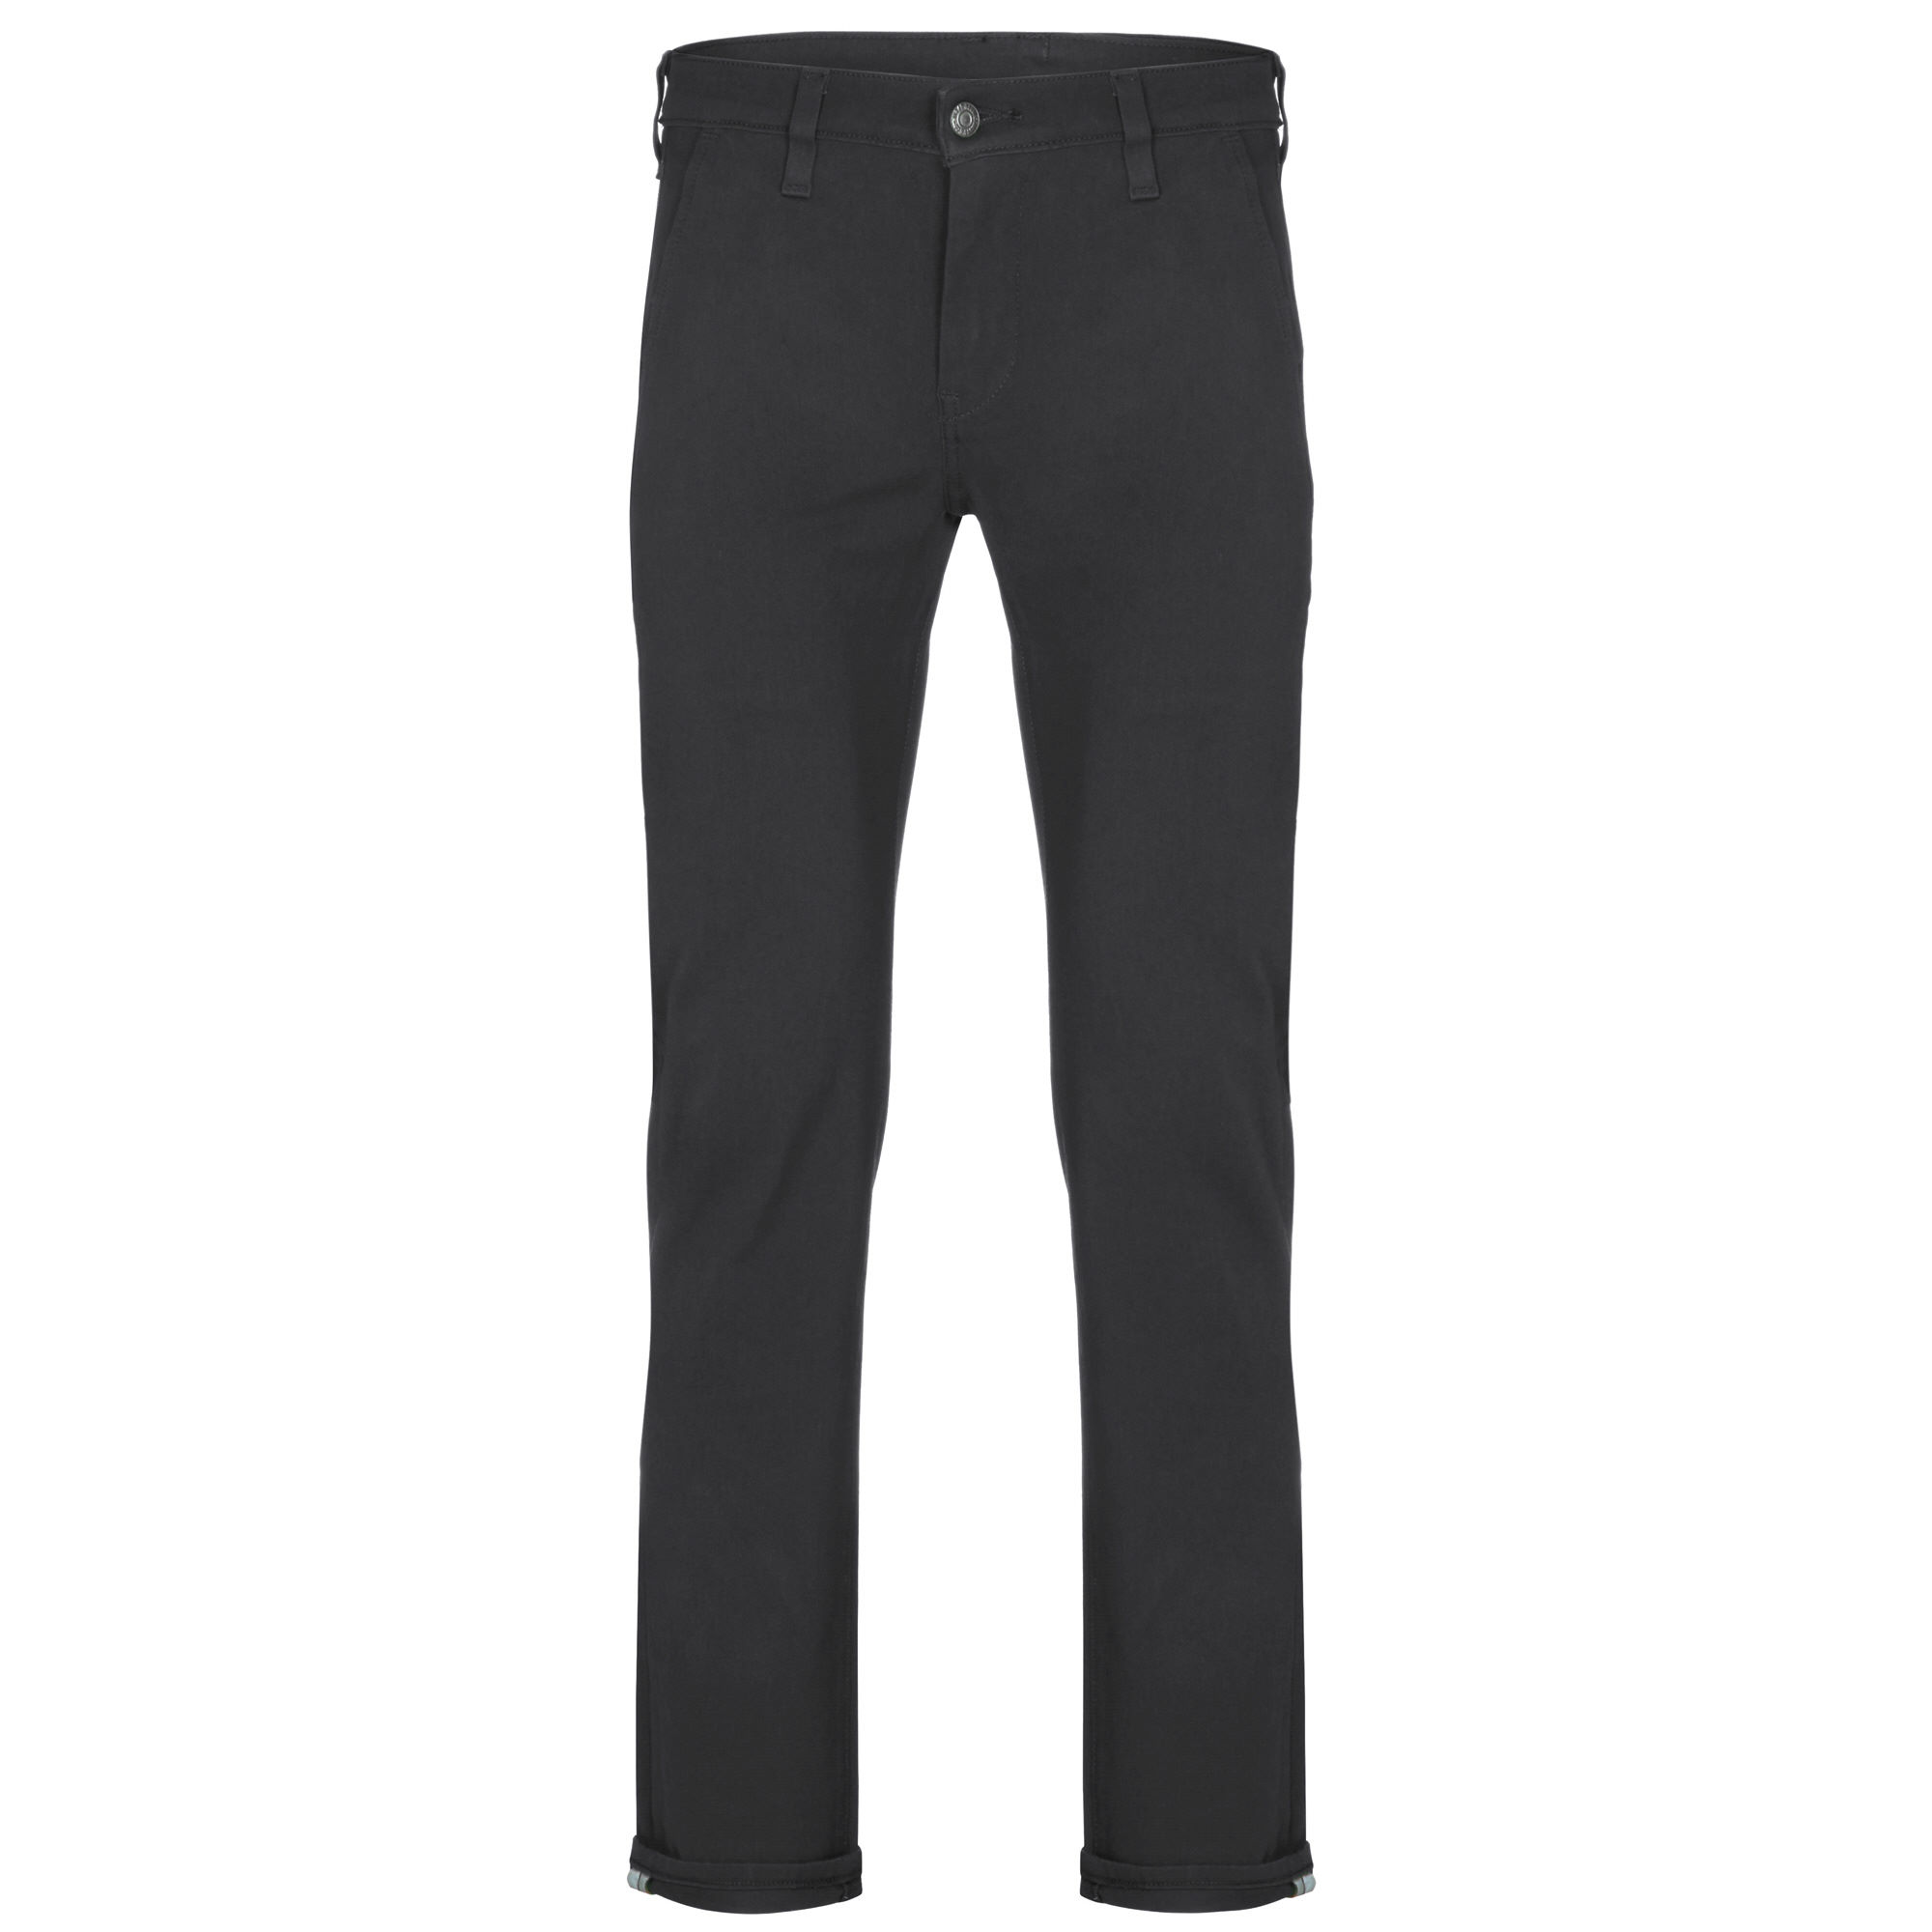 pantalons de loisirs levi 39 s commuter 511 trouser. Black Bedroom Furniture Sets. Home Design Ideas